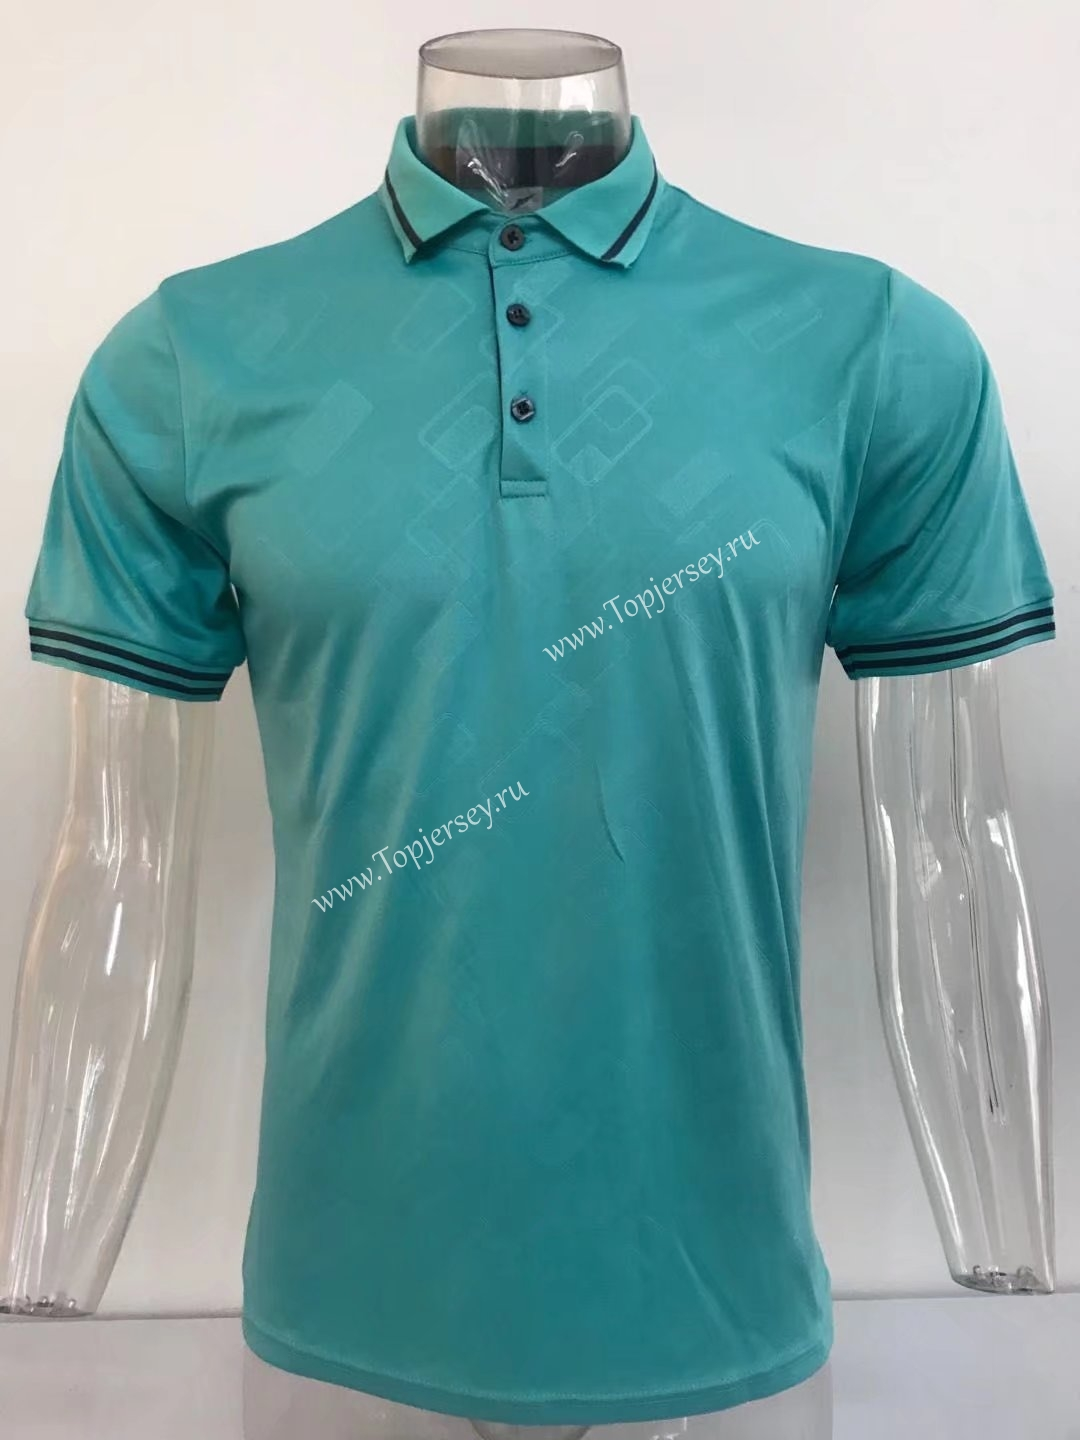 Without Logo Thailand Polo Shirt Light Green Top 15 Without Logo